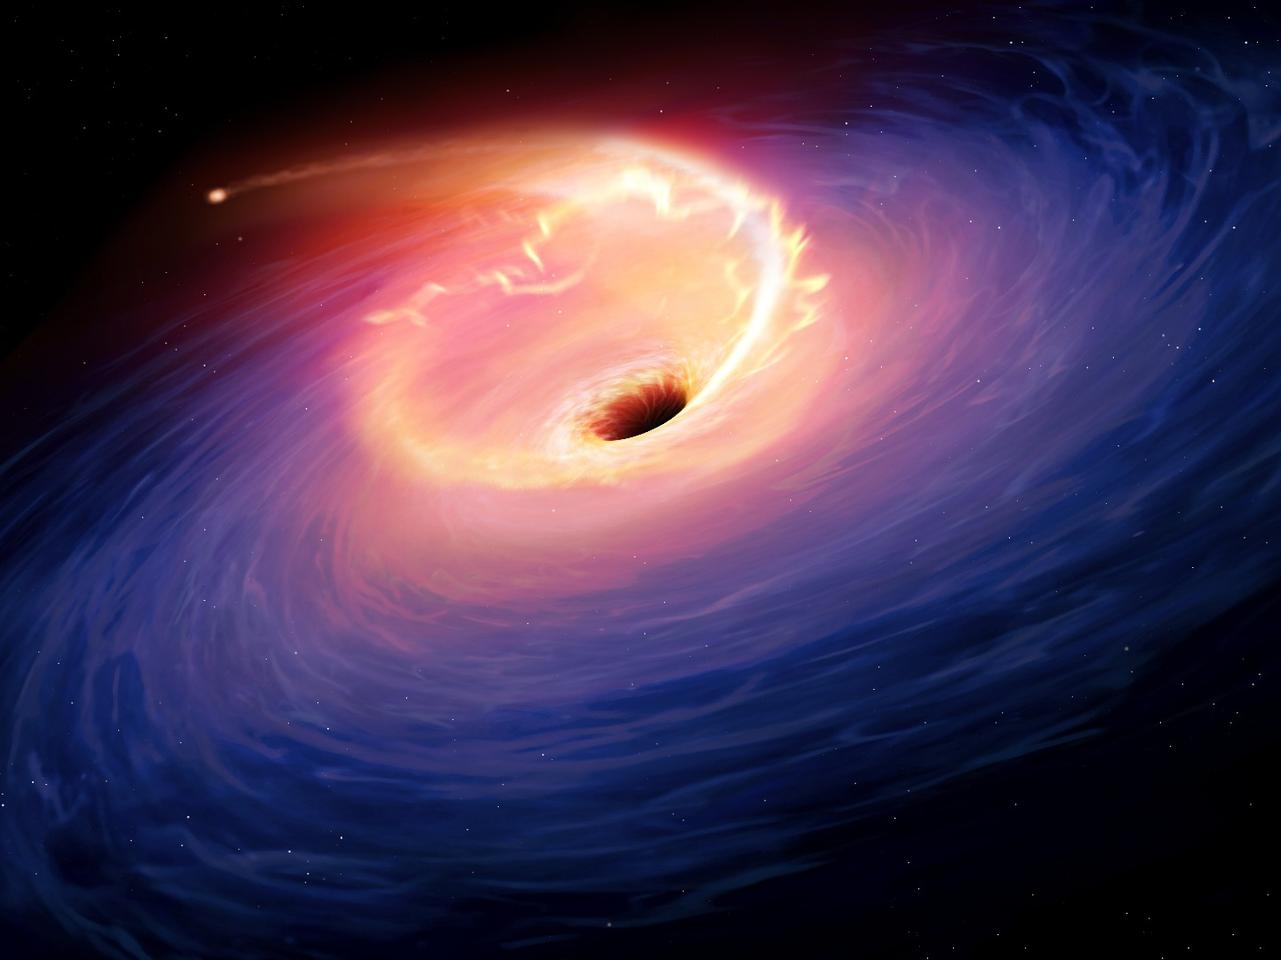 This artist's rendering of the tidal disruption event in F01004-2237 shows the release of gravitational energy and a flare of light as the debris of the star is swallowed by the black hole